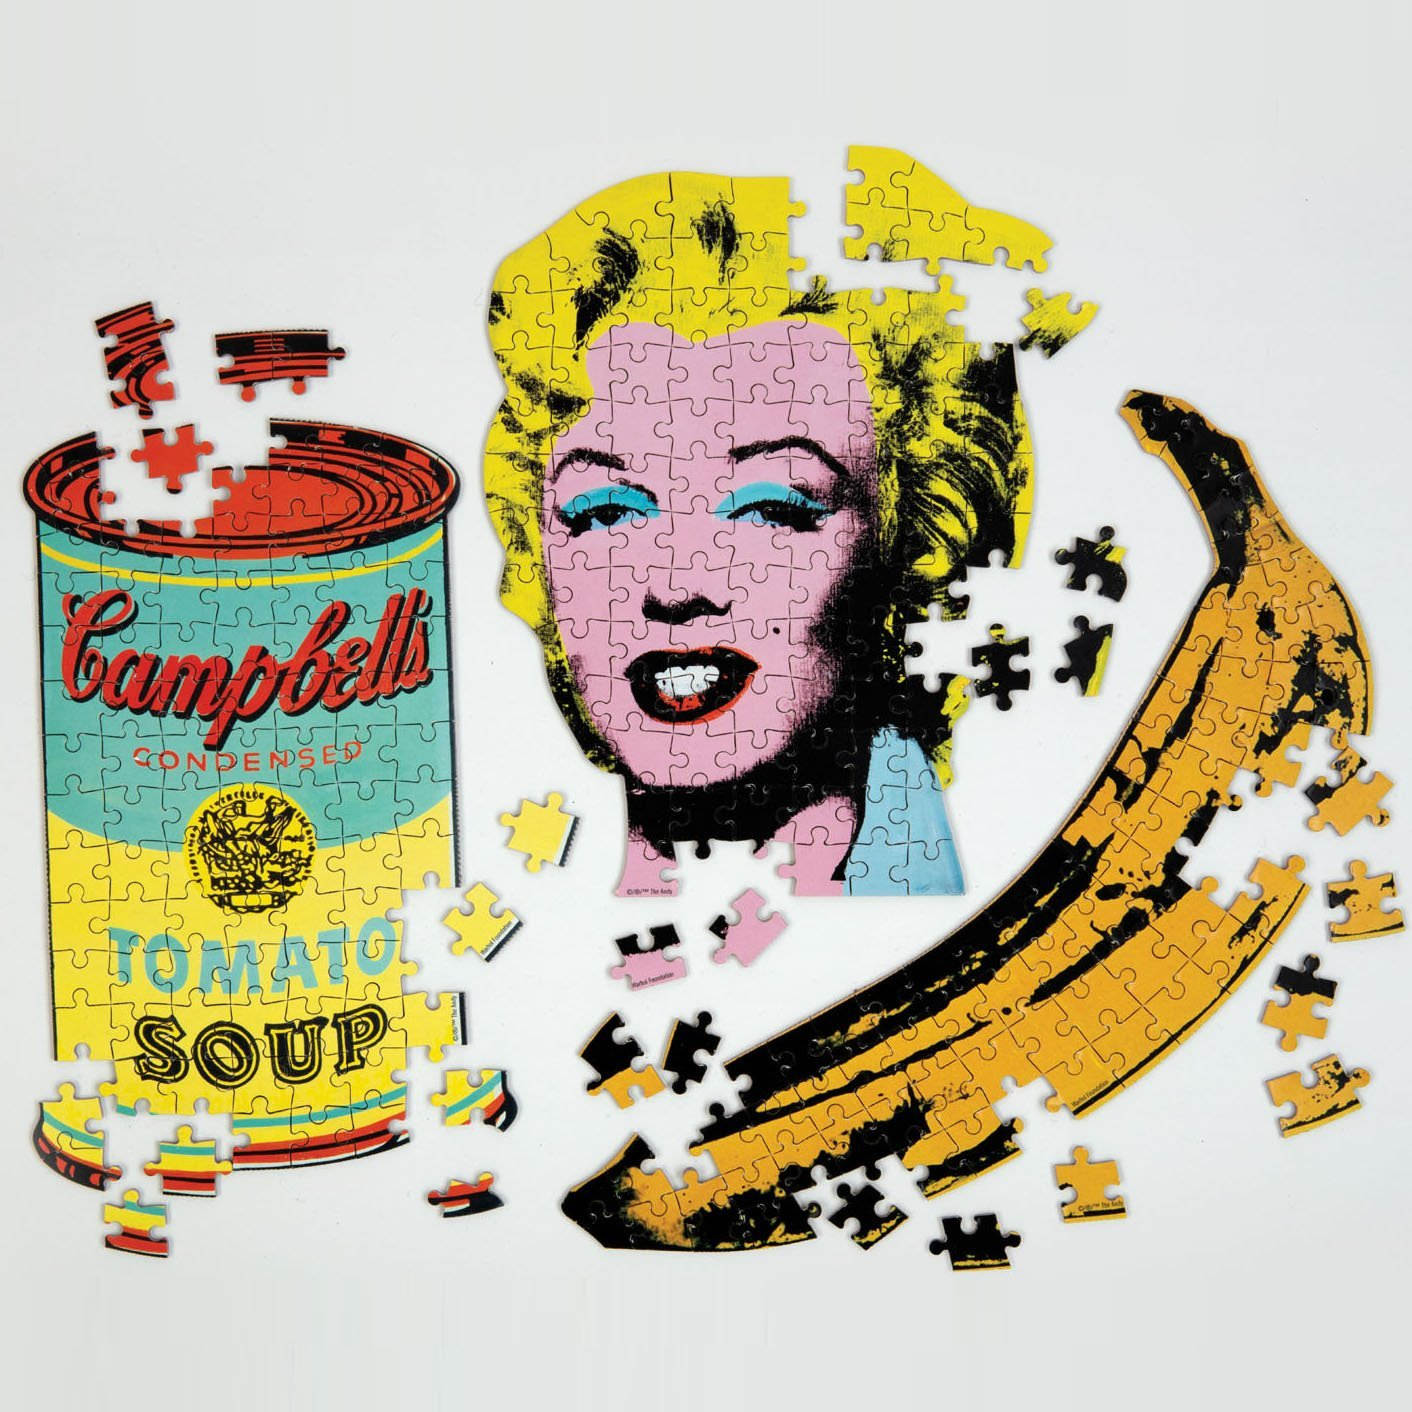 Andy Warhol Mini Shaped Puzzle Campbell's Soup Mini-Shaped Puzzles Galison